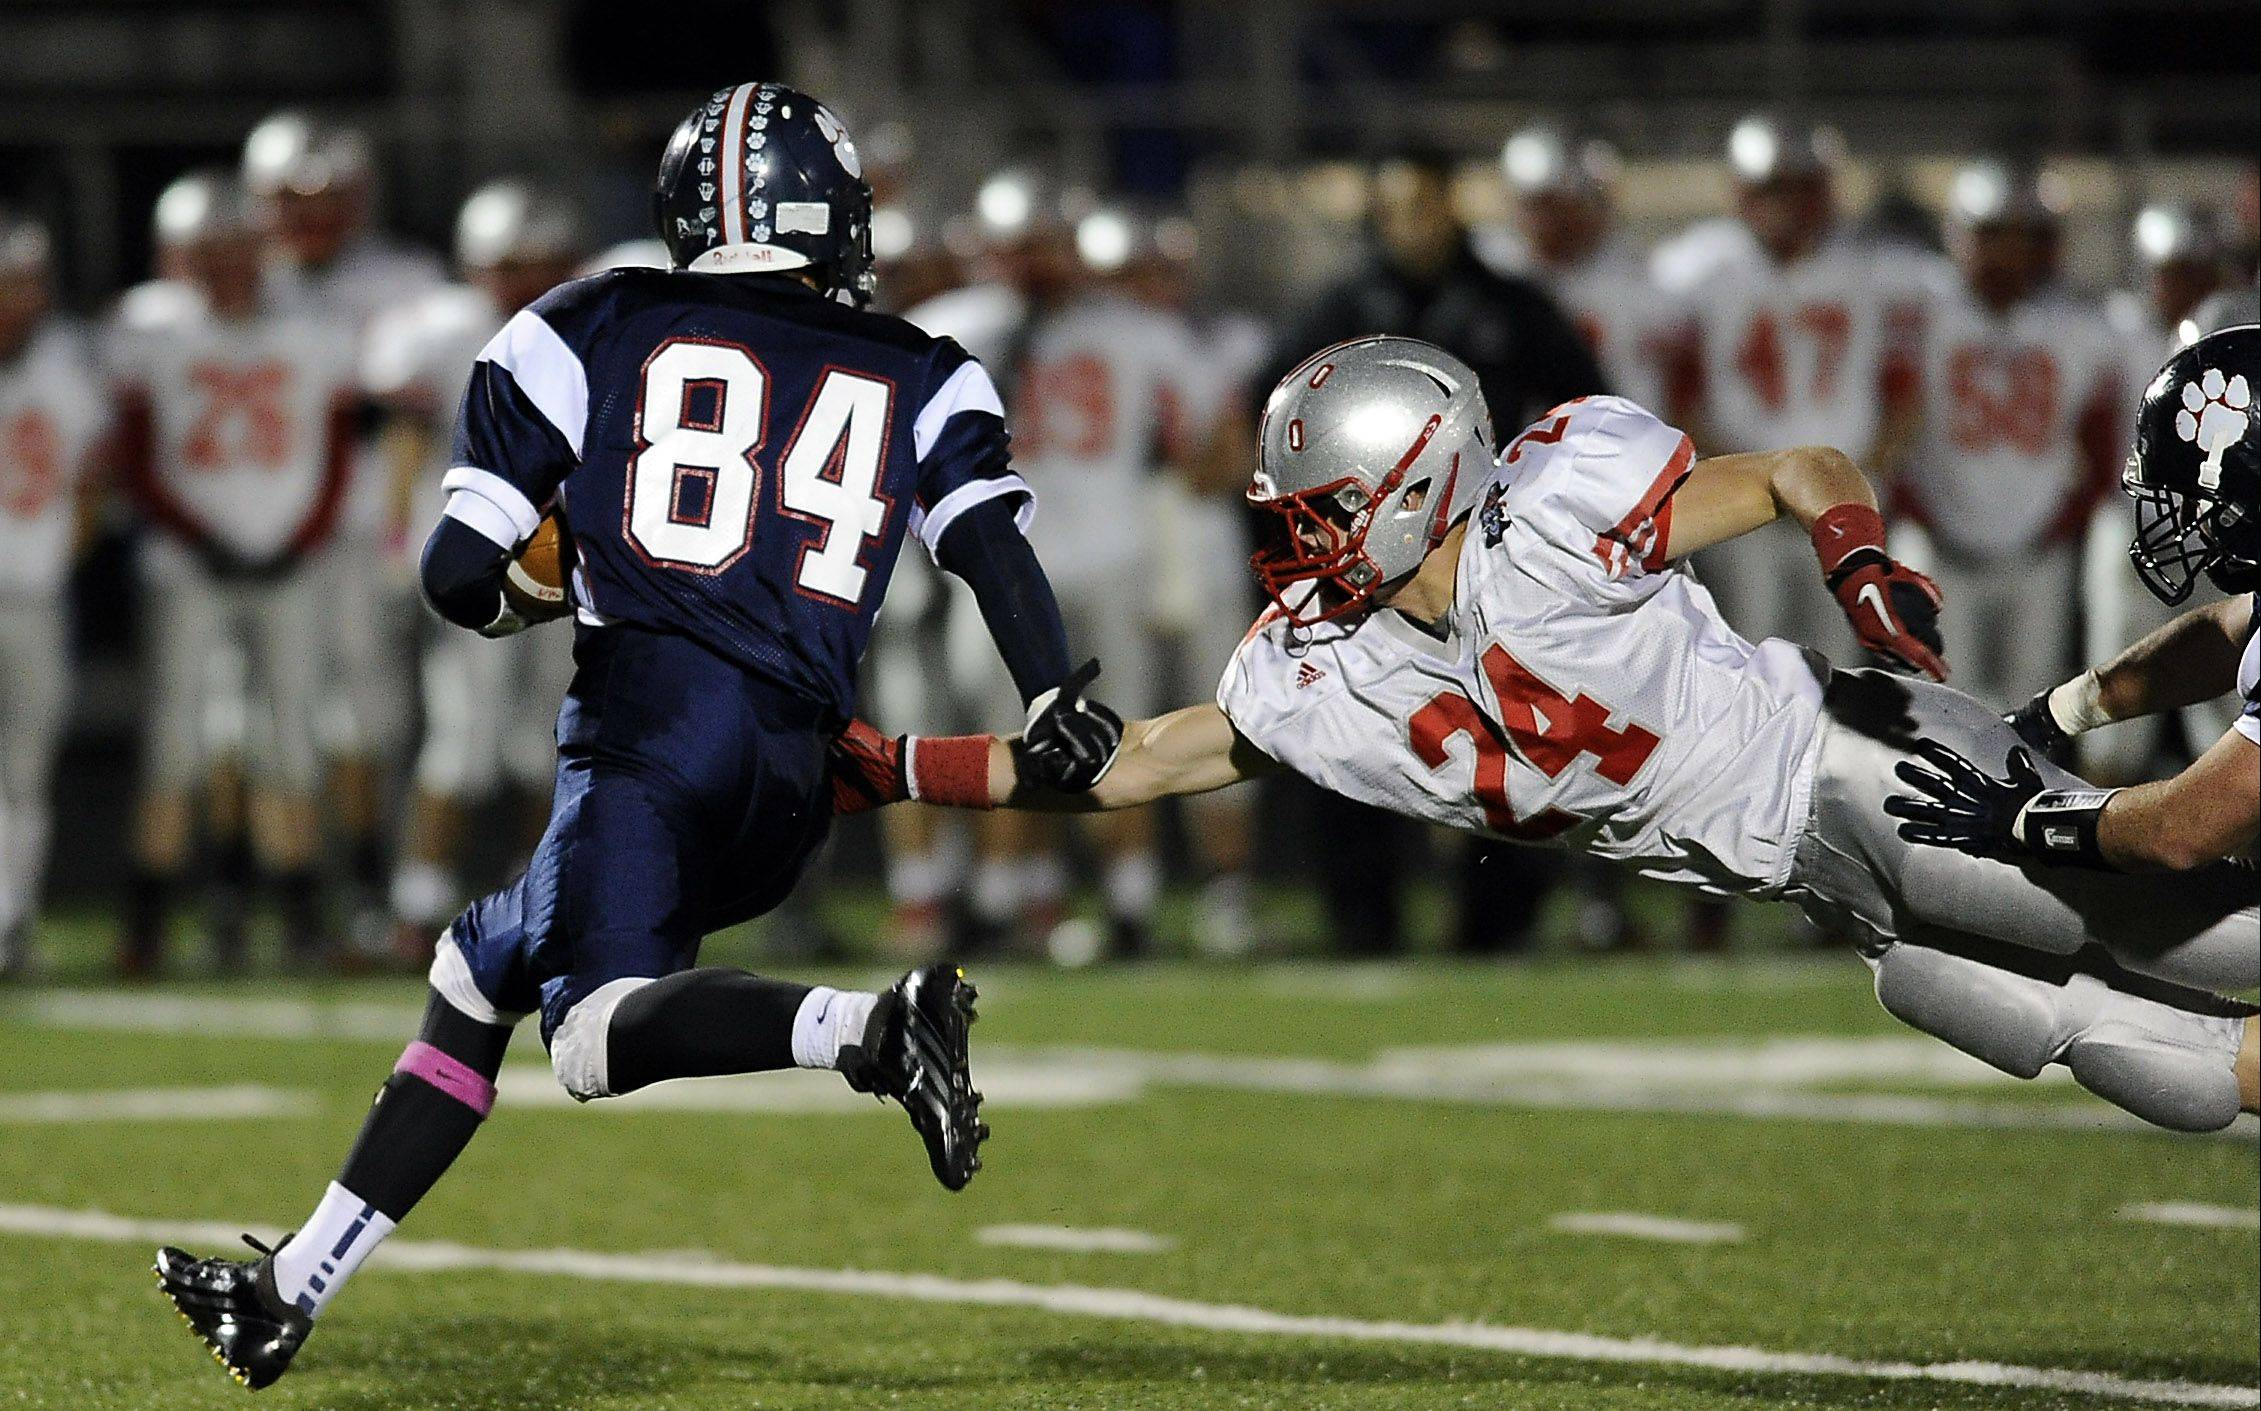 Palatine's Dan Riddle makes an unsuccessful diving attempt to stop a run by Conant's Tim Manczko on Friday at Conant.